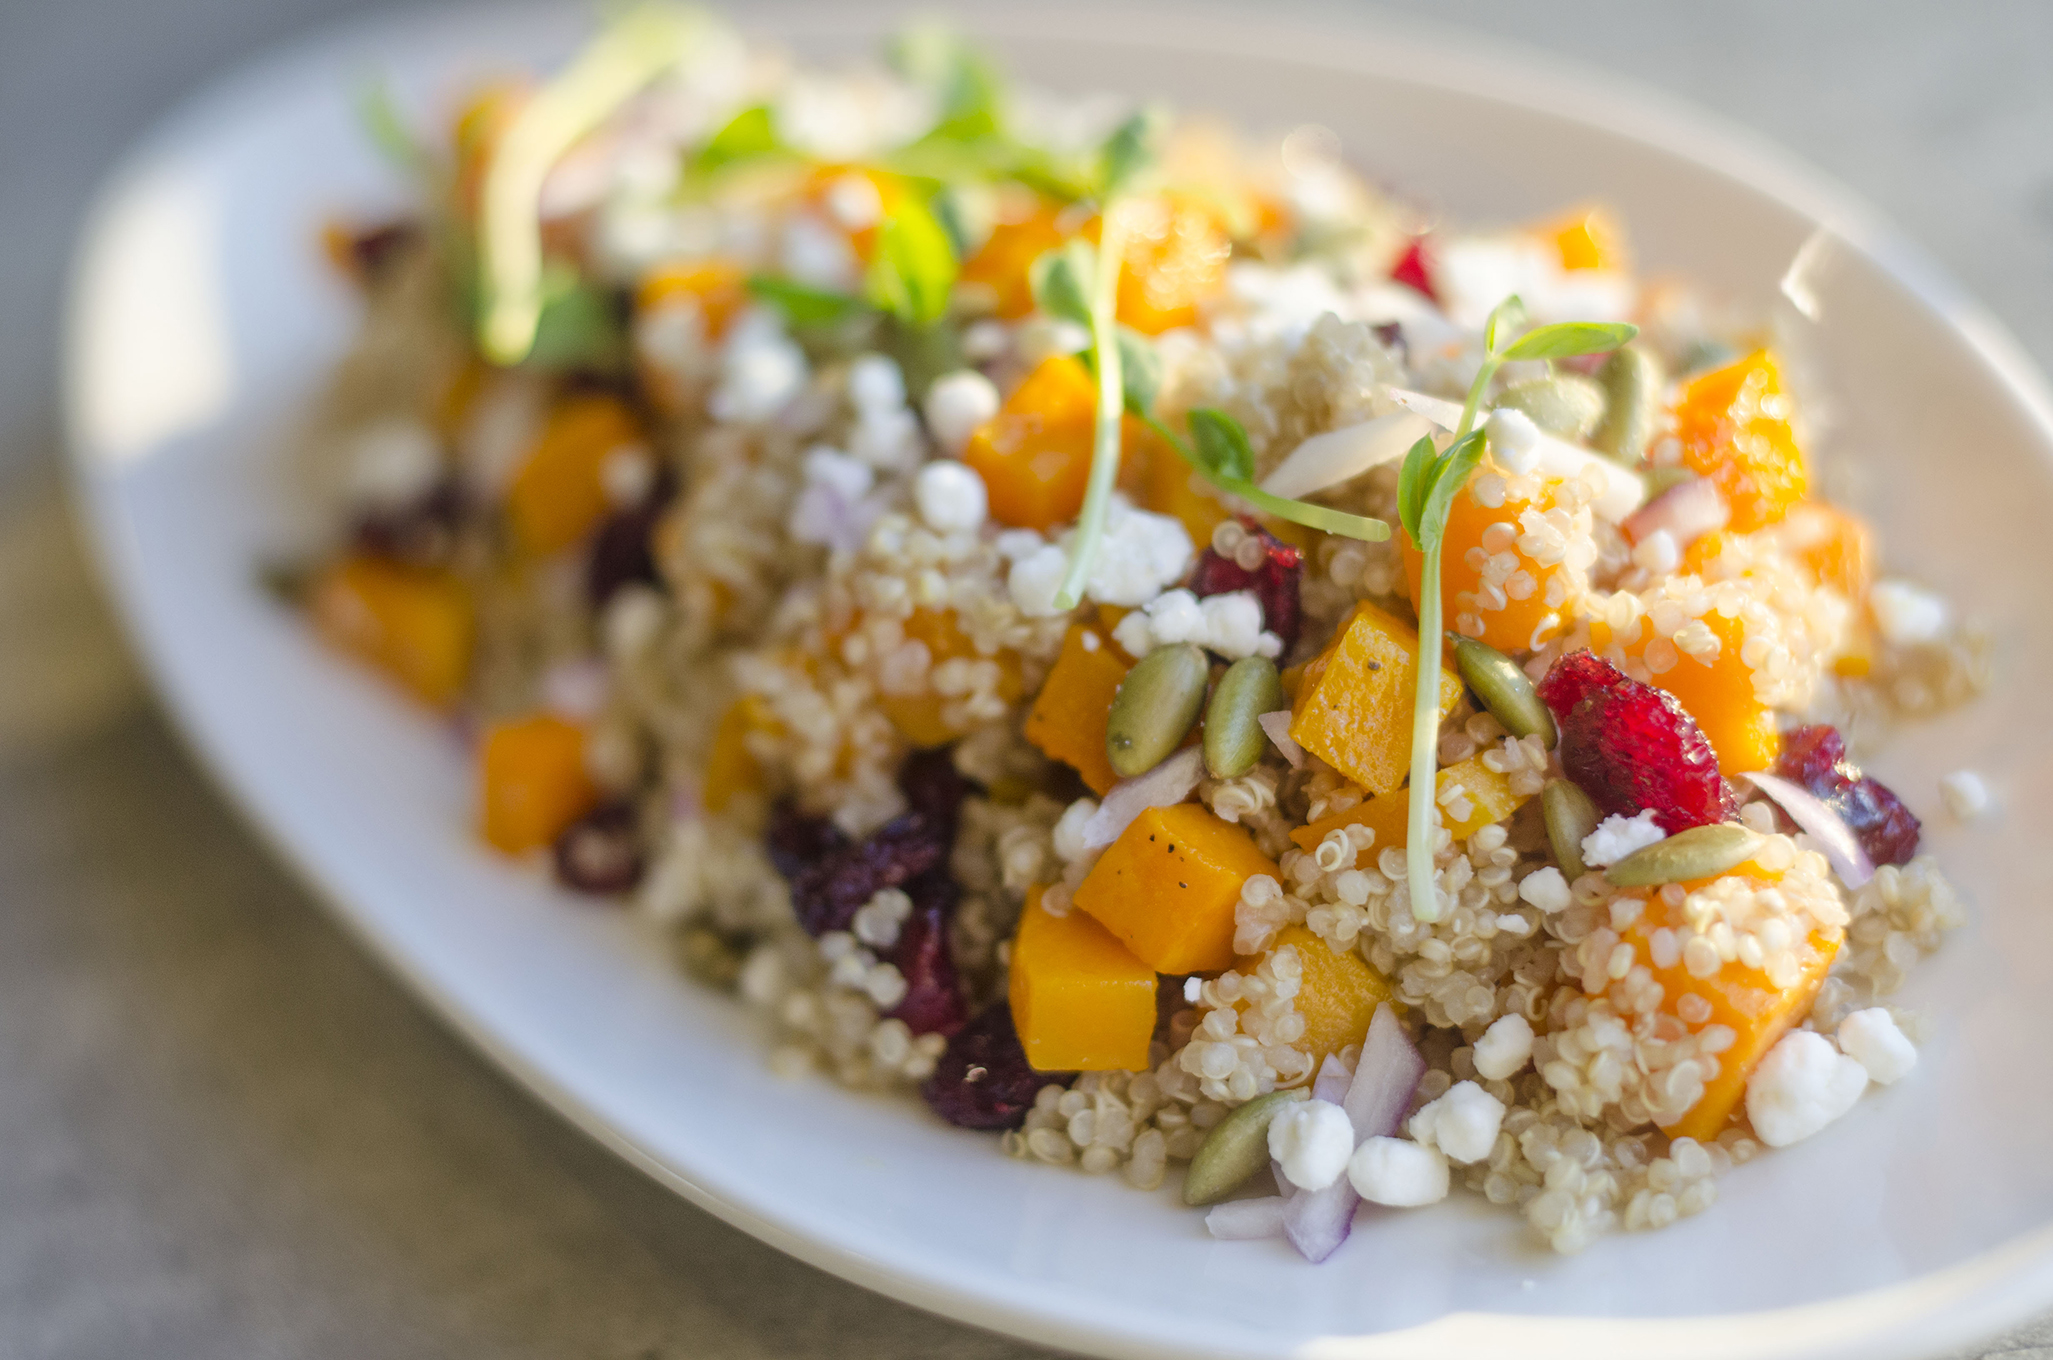 Butternut squash quinoa salad from Paglione Estate Winery in Essex, Ontario.